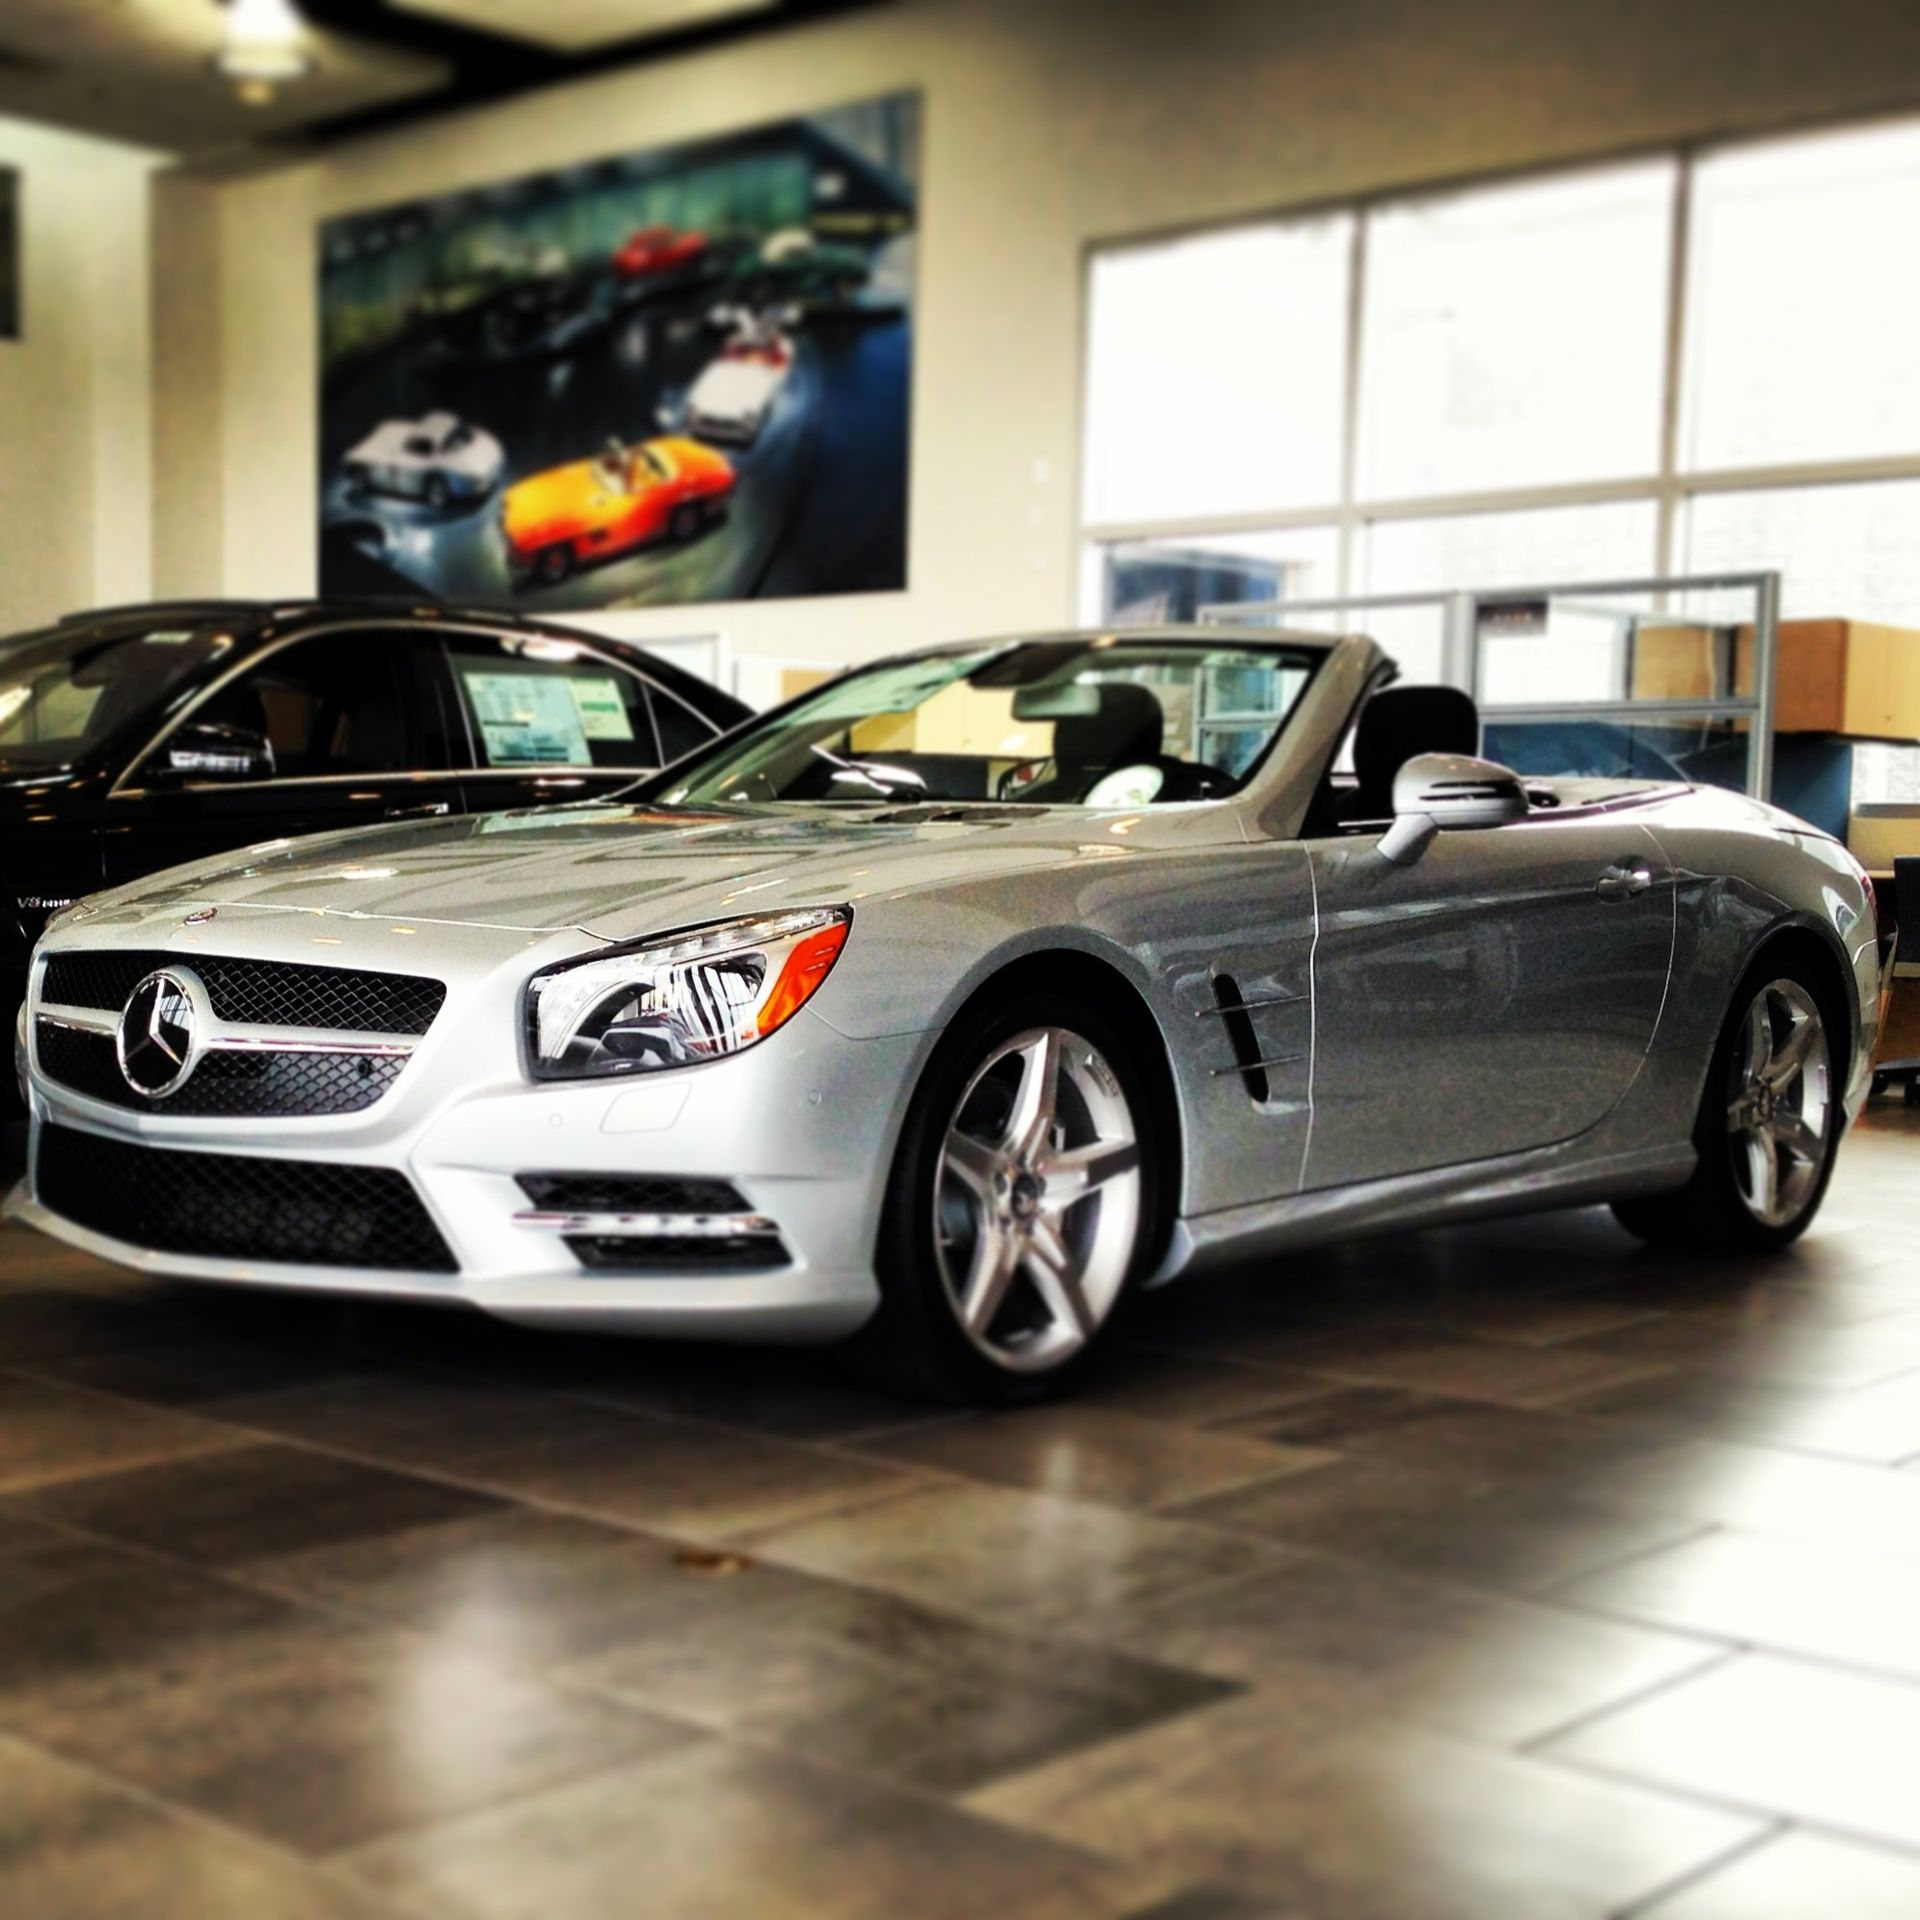 Mercedes Benz SL550  www.dealerdonts.com